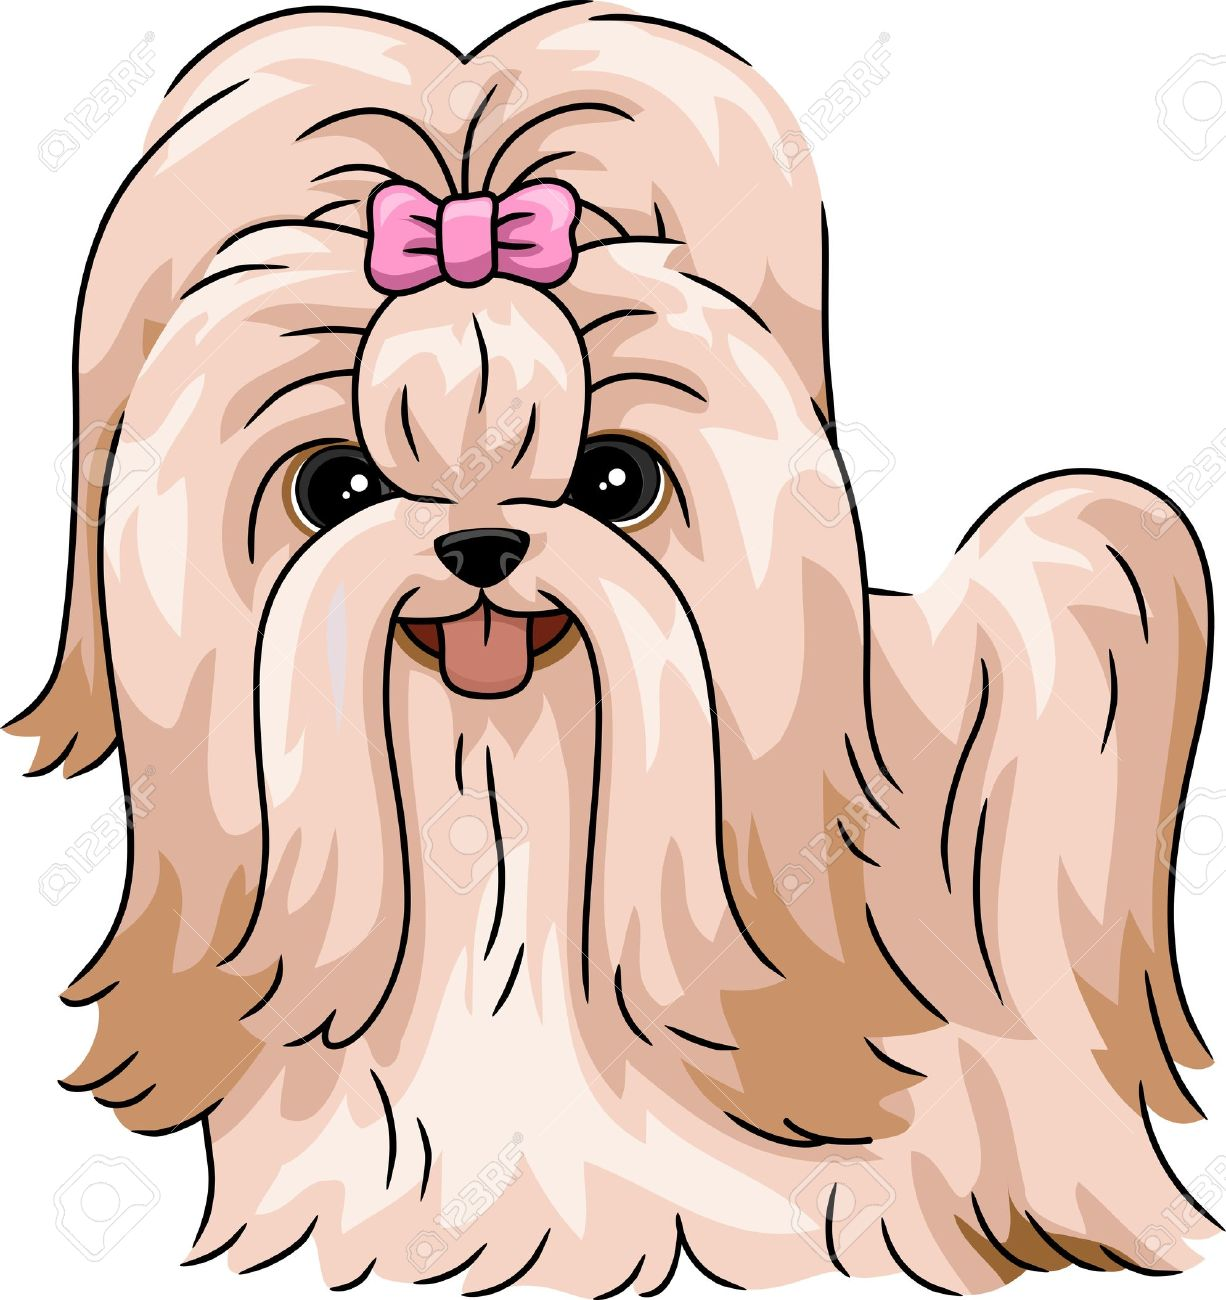 344 shih tzu stock illustrations cliparts and royalty free shih